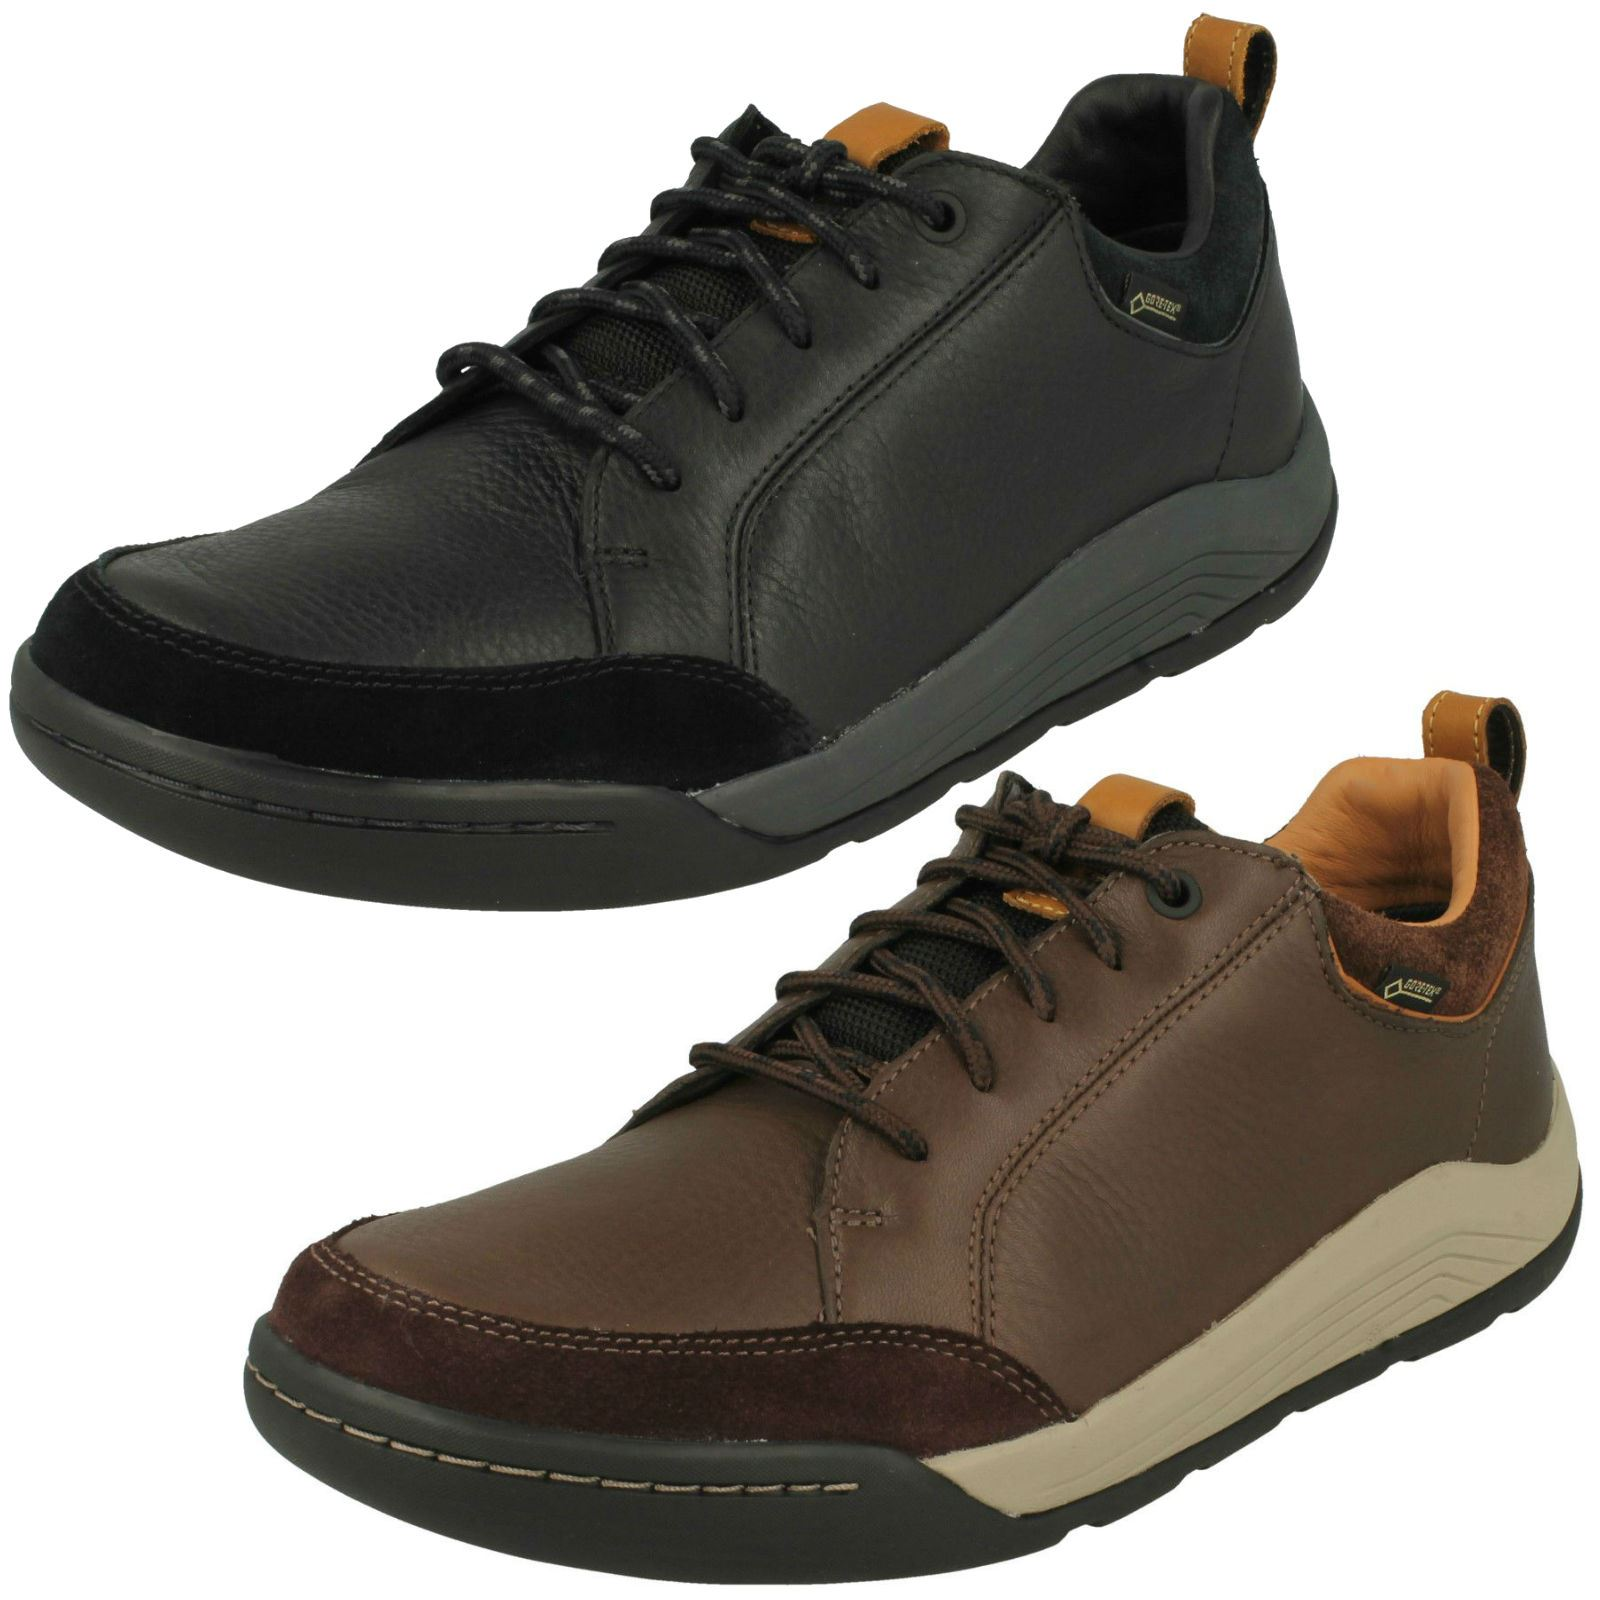 Details about Mens Clarks Casual Gore Tex Shoes 'Ashcombe Bay GTX'